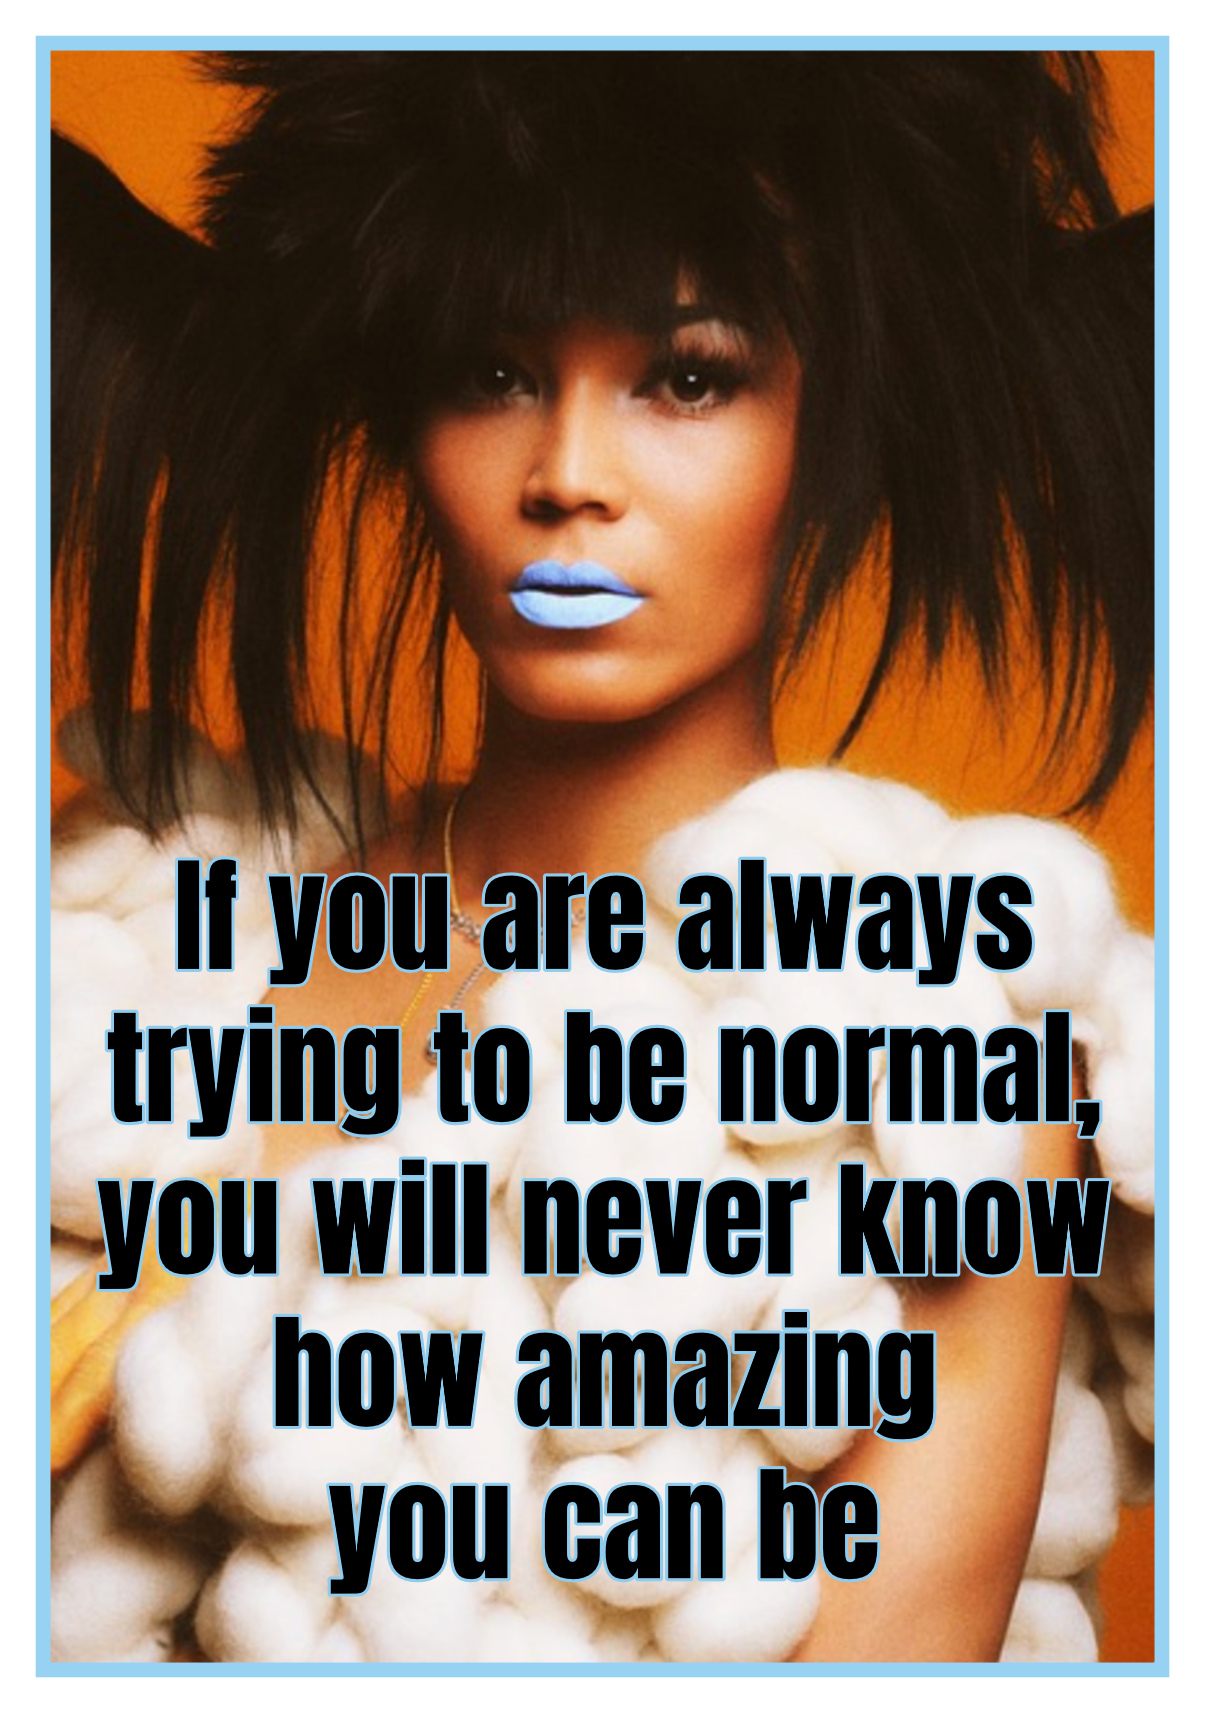 If you are always trying to be normal, you will never know how amazing you can be Quote Maya Angelou